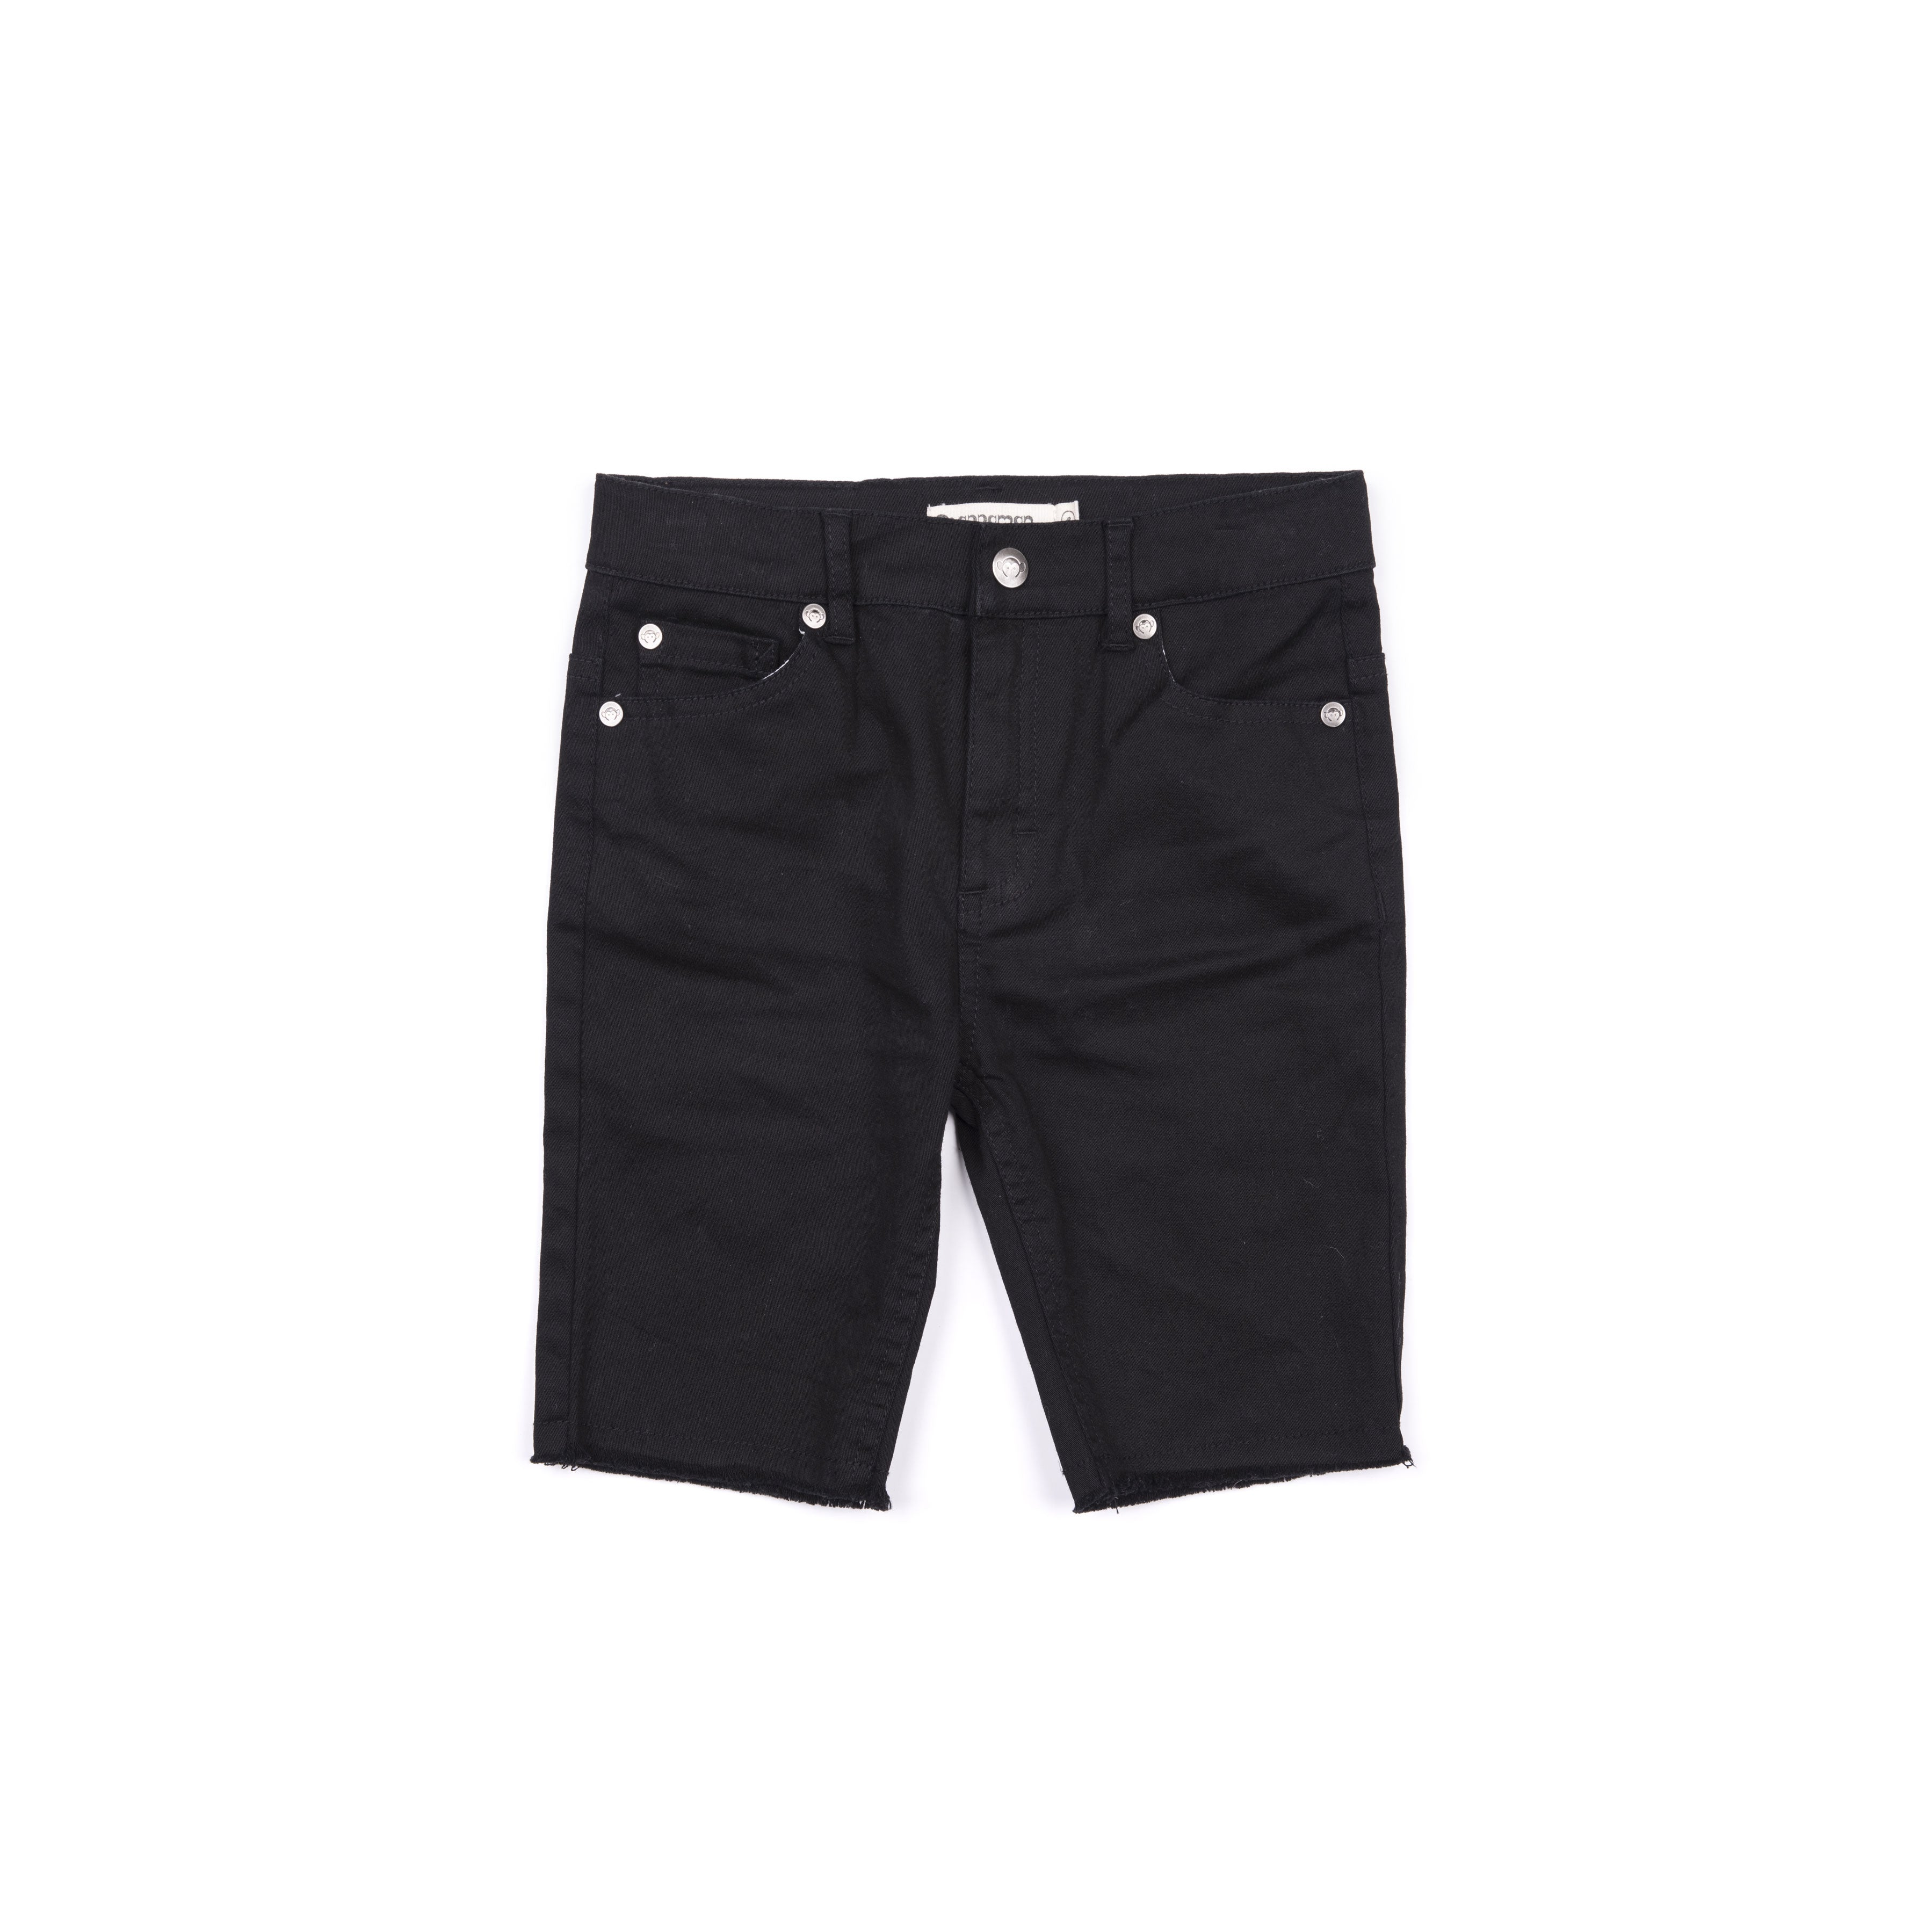 Appaman Black Punk Shorts